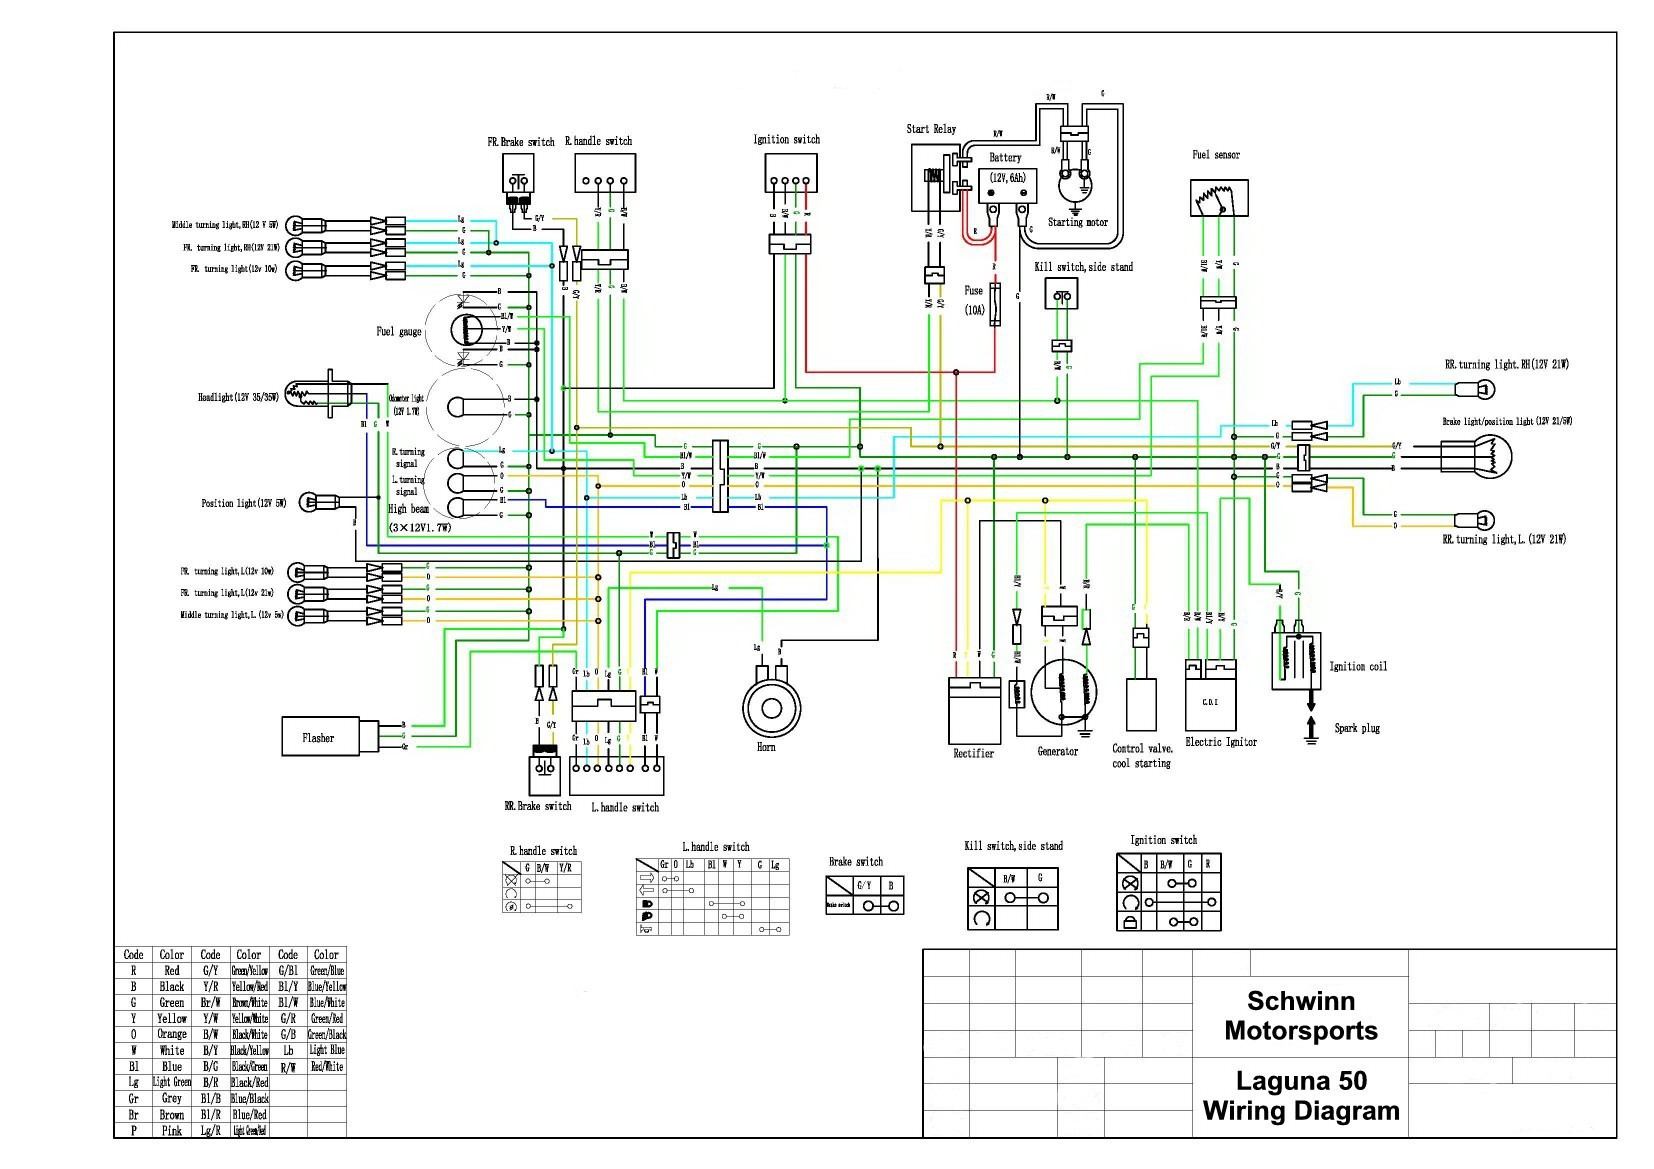 madami wiring diagram diy enthusiasts wiring diagrams u2022 rh wiringdiagramnetwork today Madami Parts 2002 Madami Parts Dirt